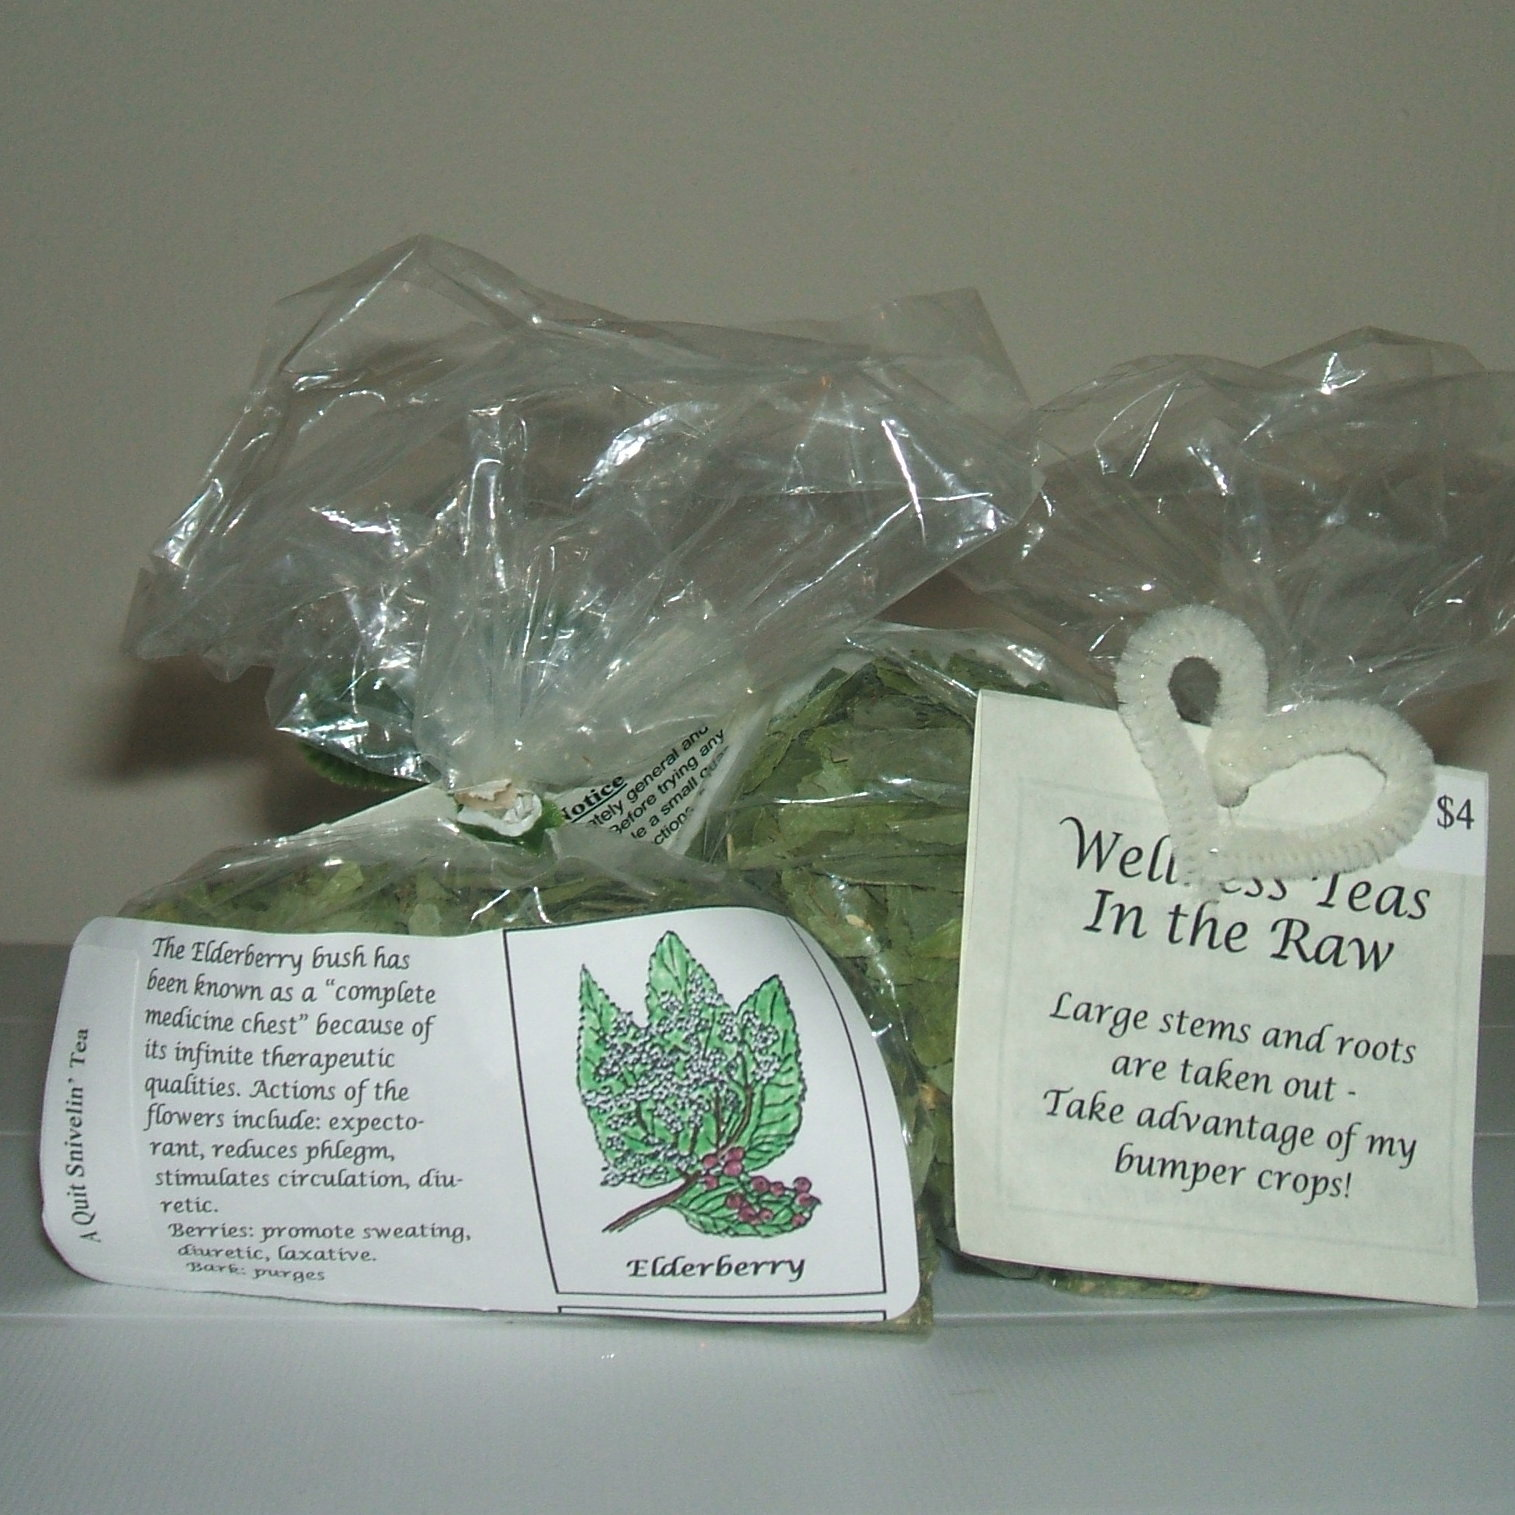 Wellness Teas in the Raw bags